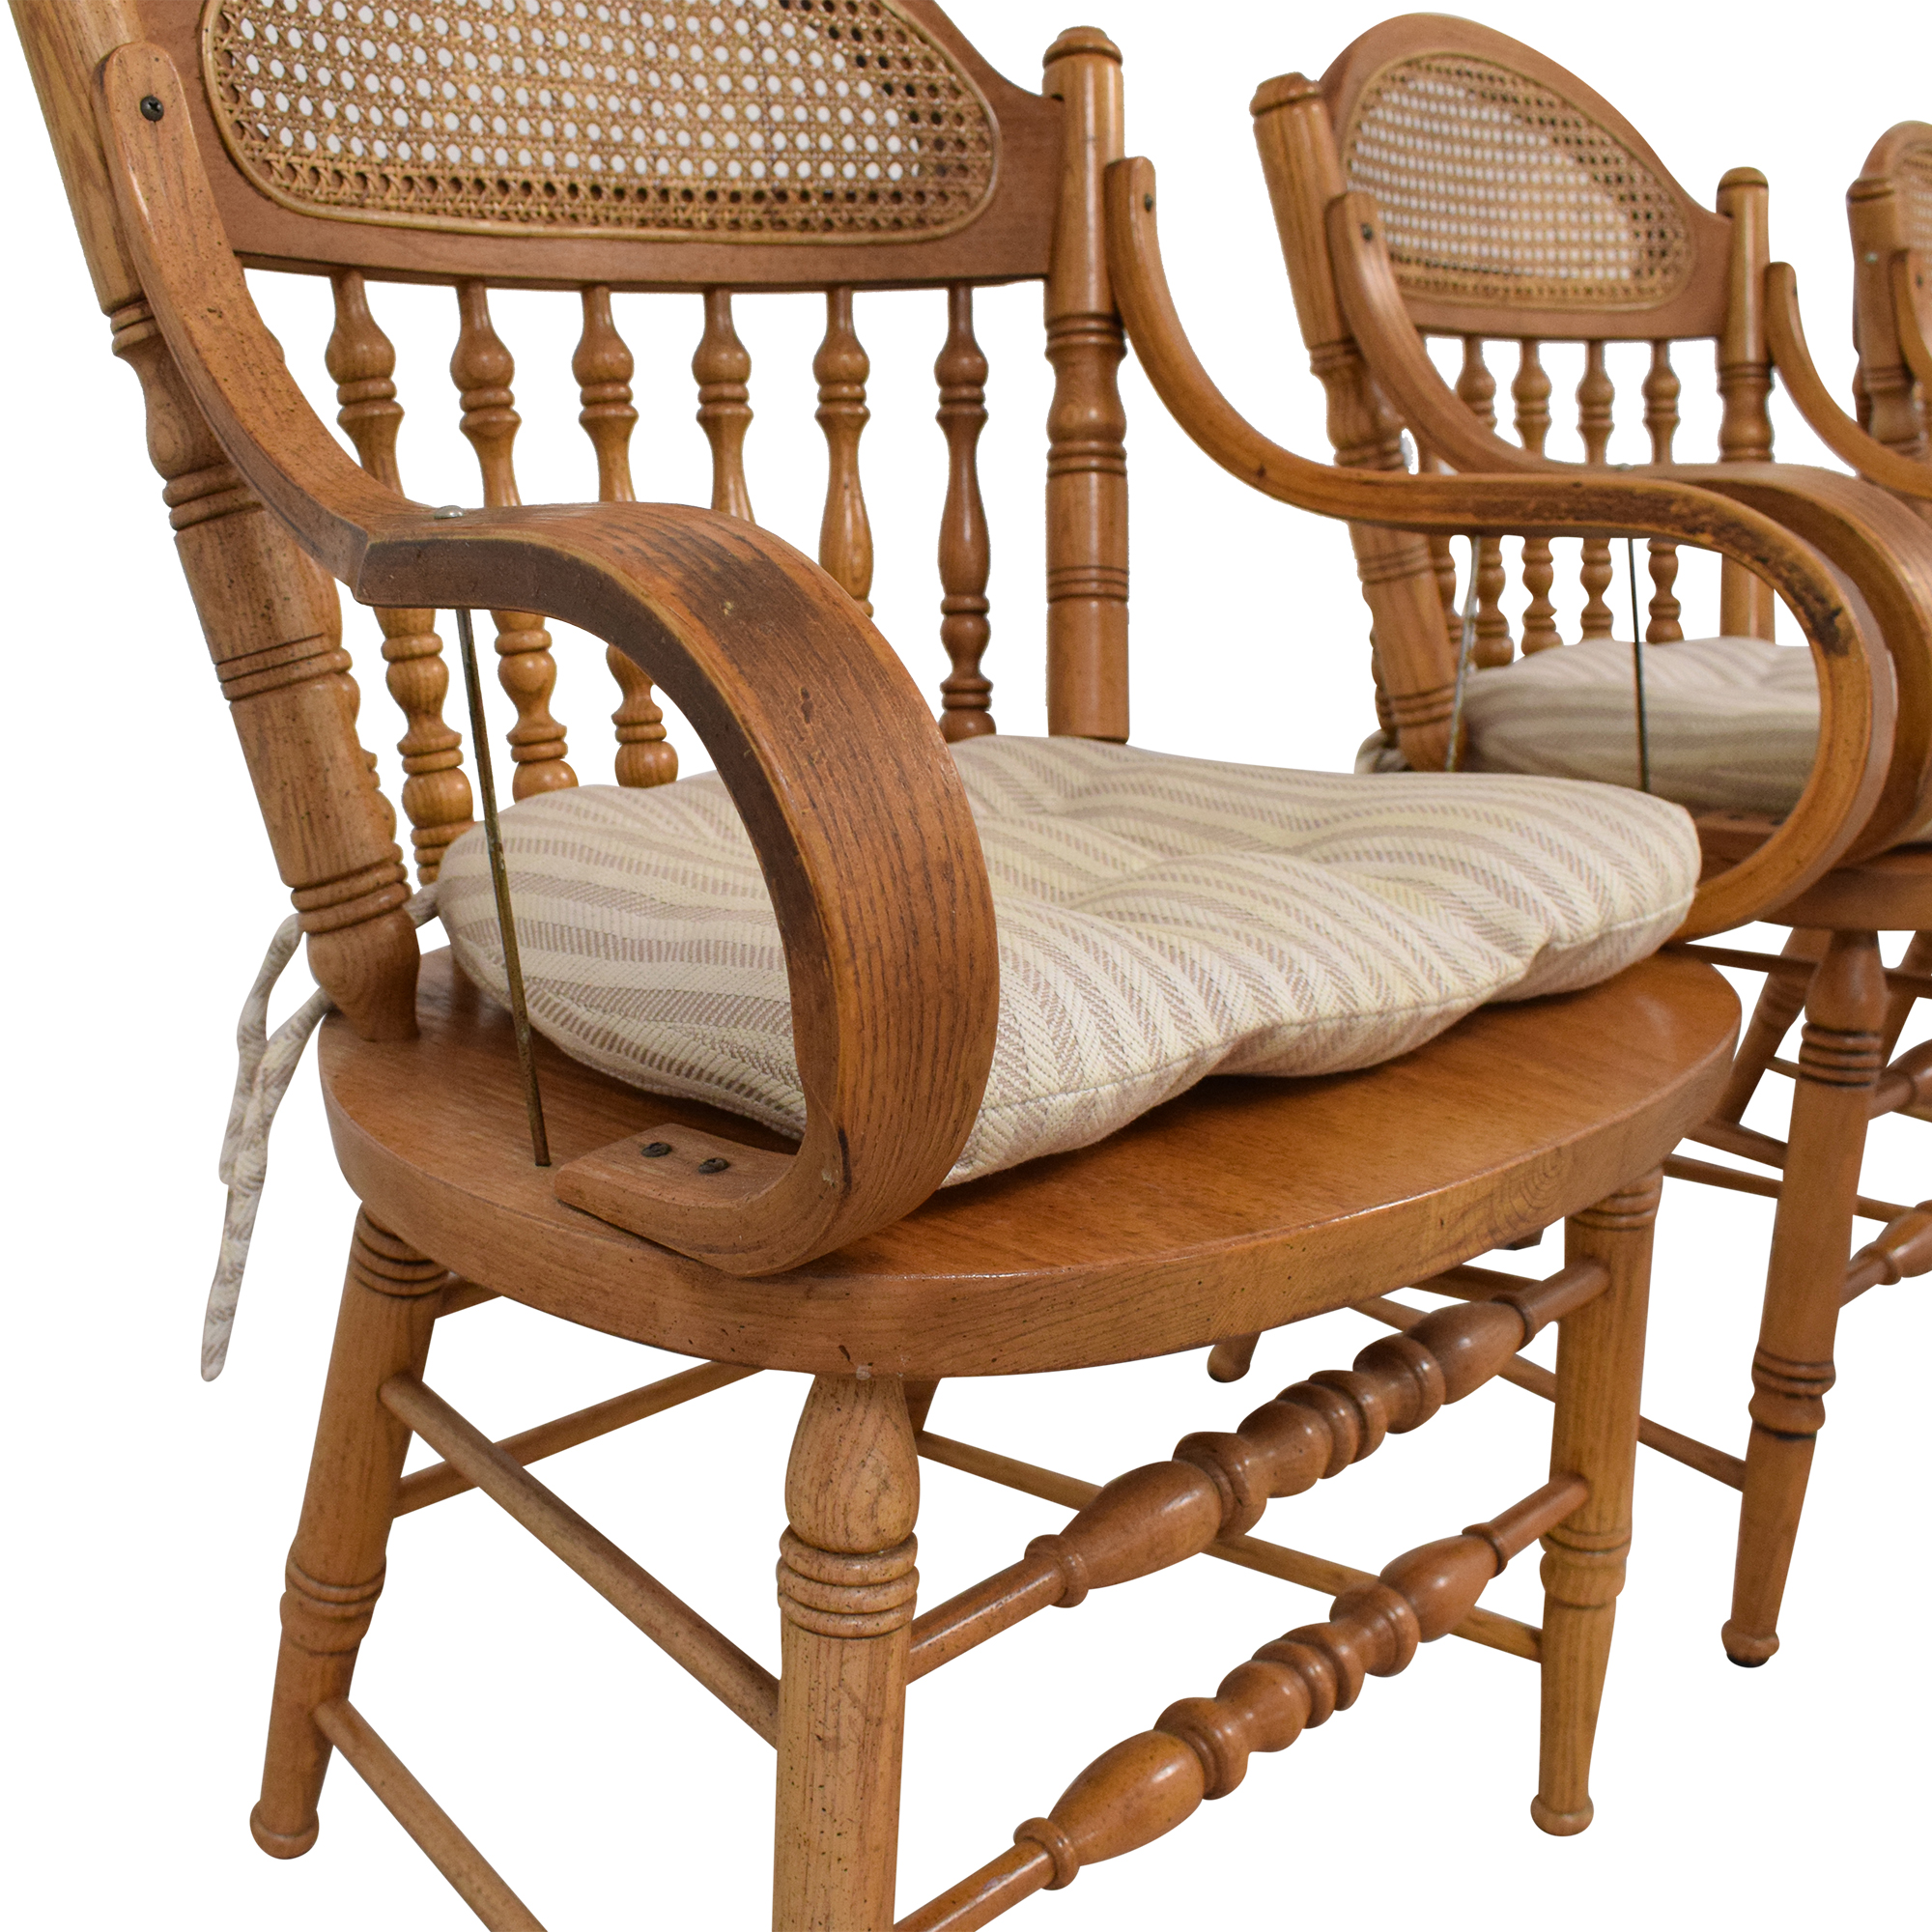 Oak Dining Arm Chairs with Cushions price